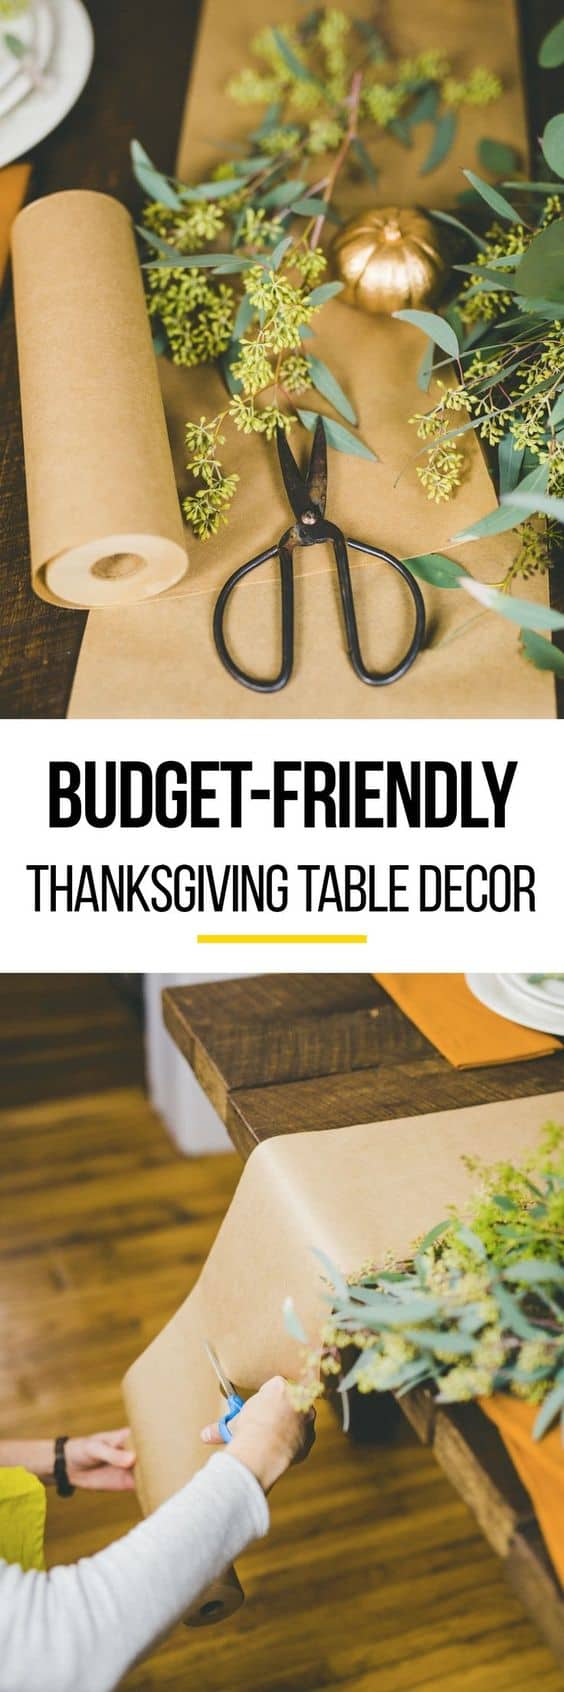 All my family loves Thanksgiving Day! It's an amazing time when everyone comes together and we all share and try new DIY Thanksgiving decor ideas.